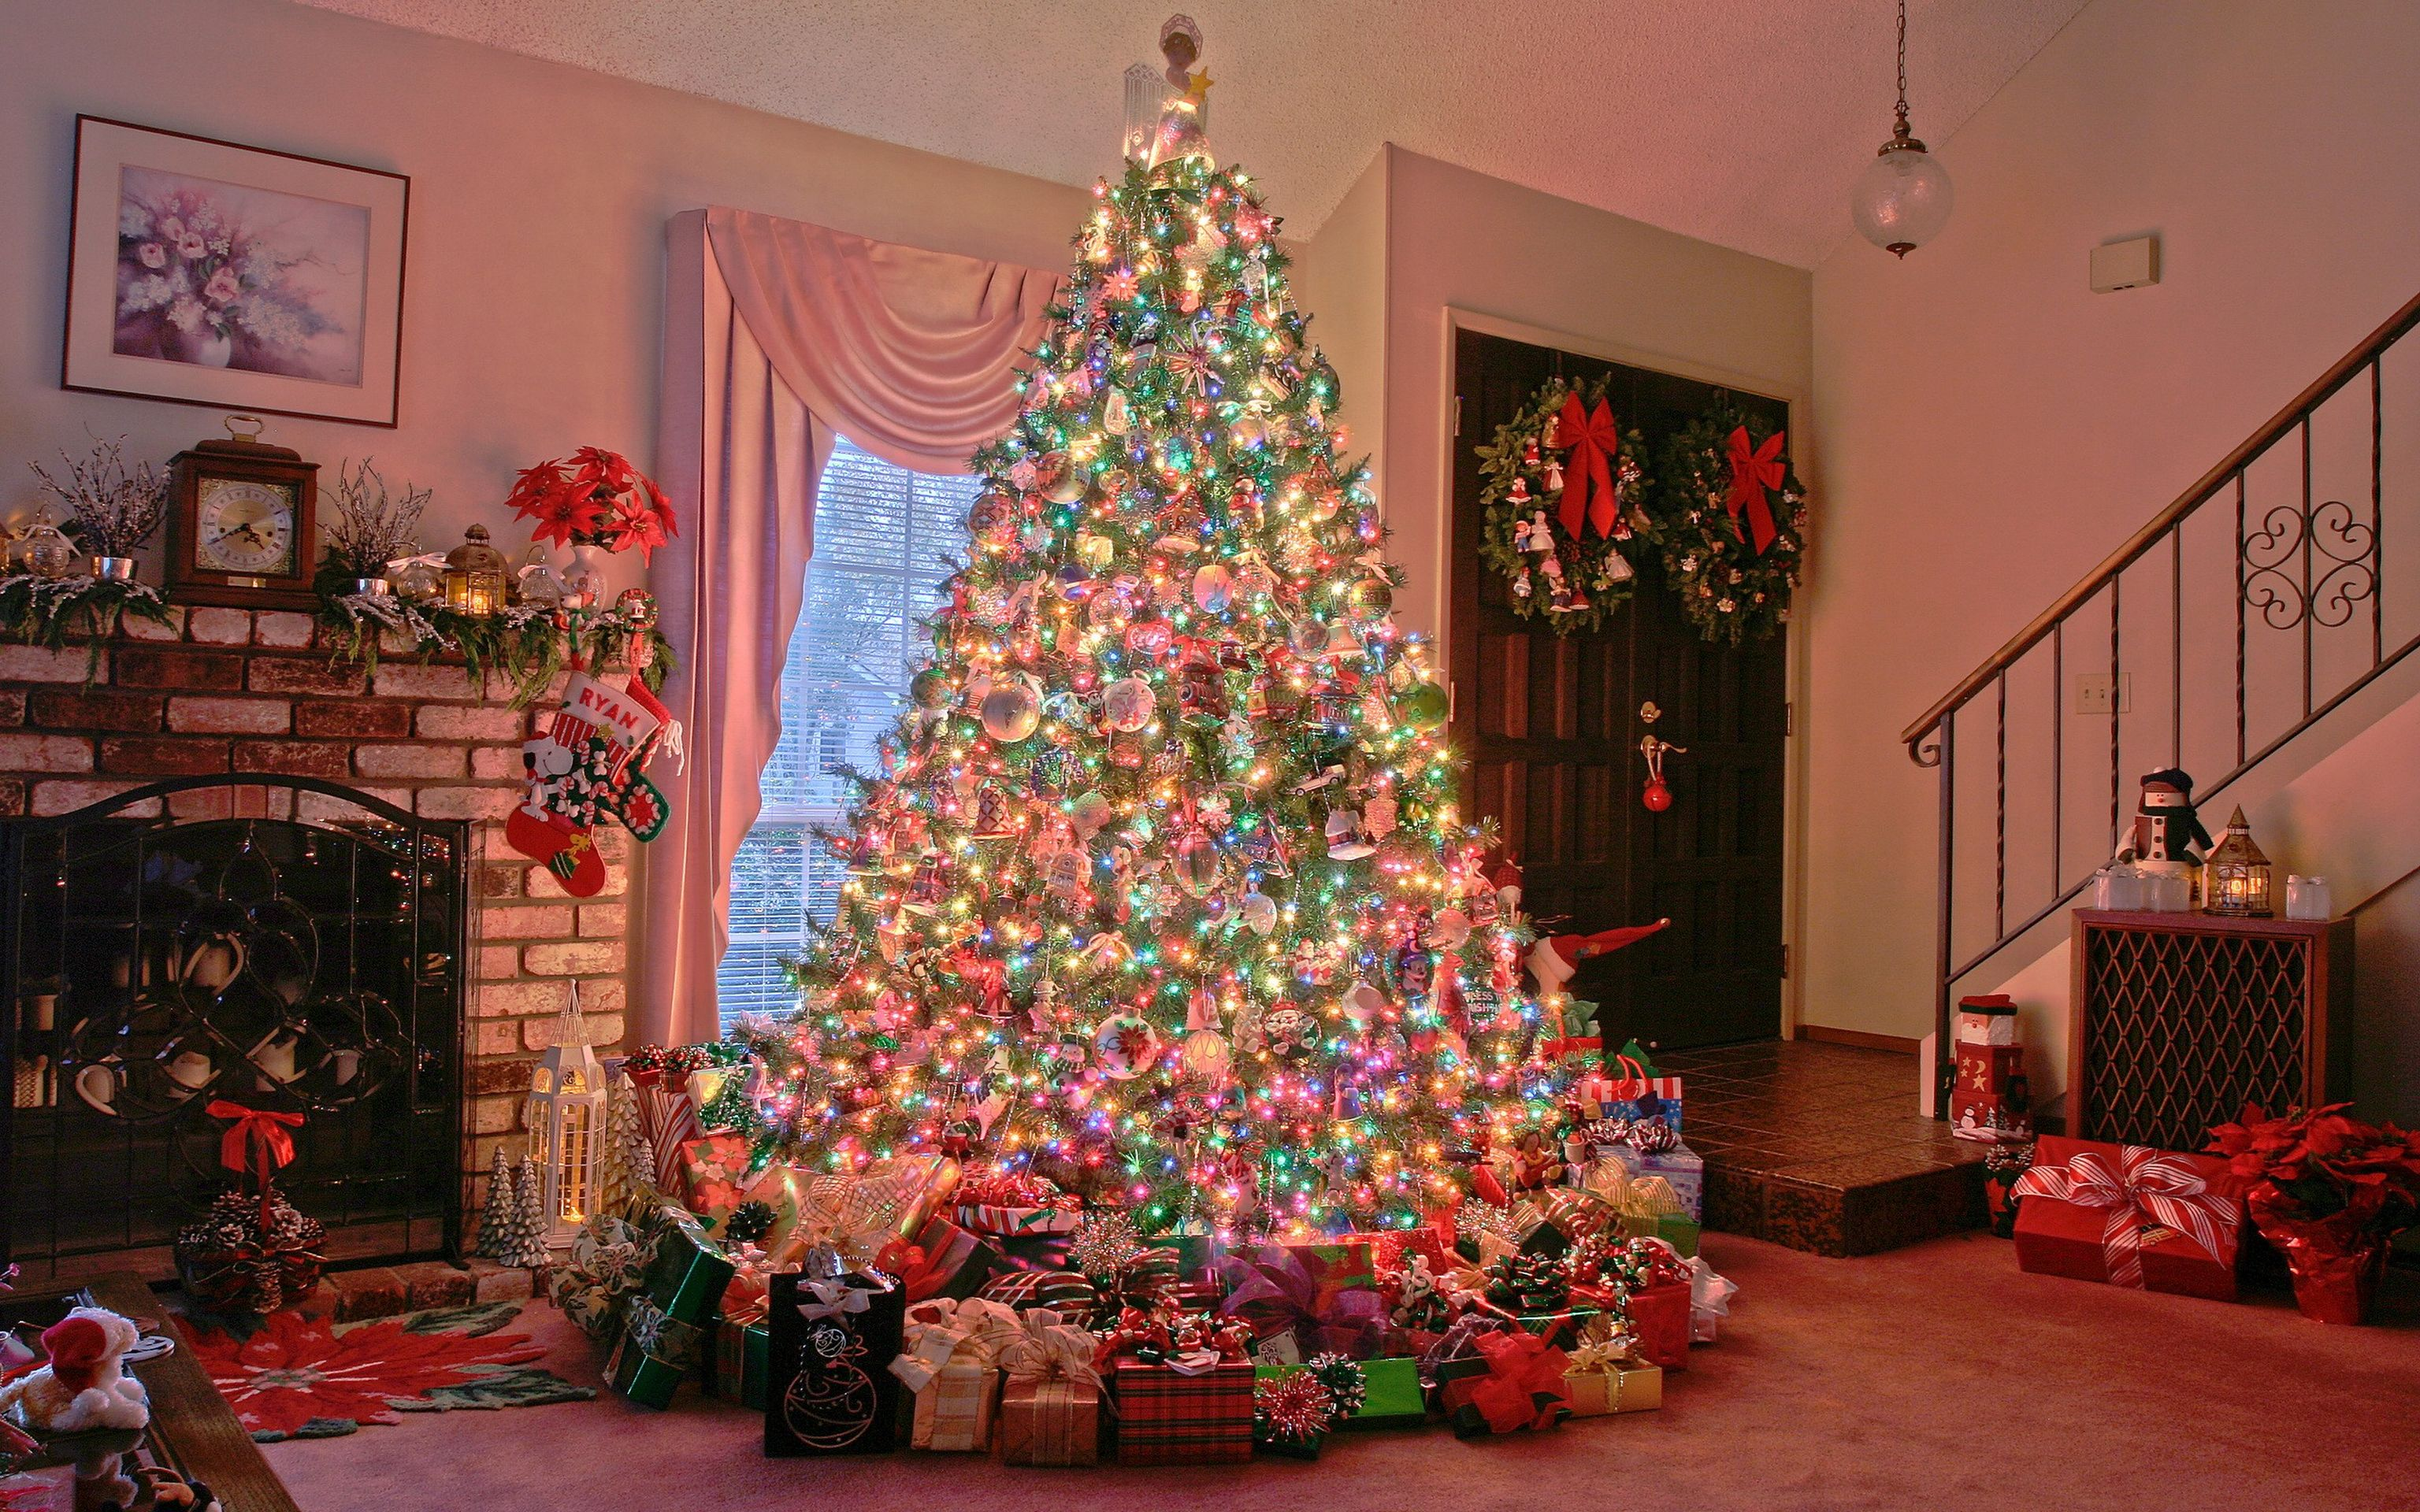 Download Original Image 3072 X 1920 Px - Christmas Tree Full Hd , HD Wallpaper & Backgrounds